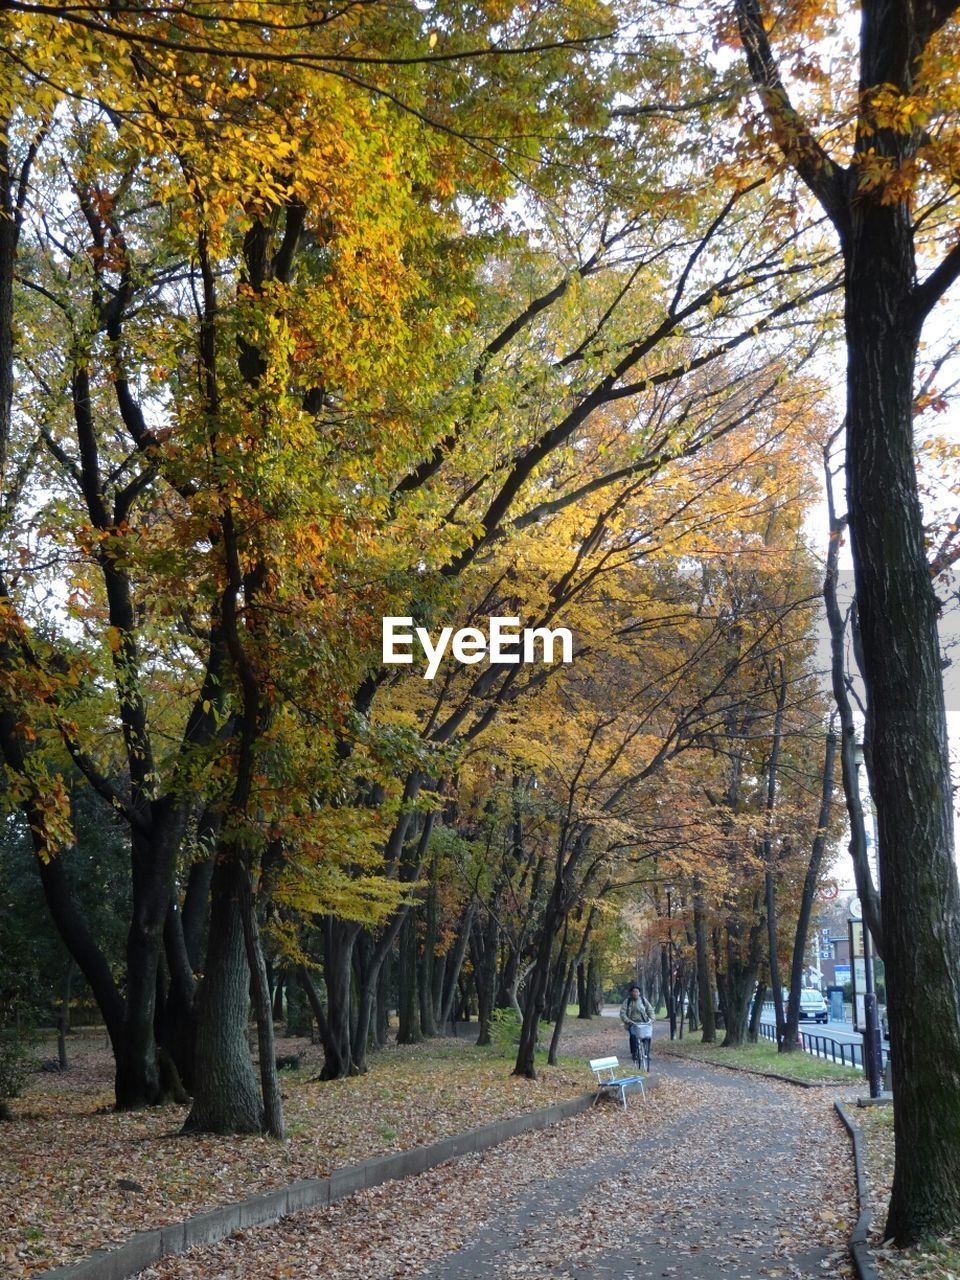 tree, autumn, change, nature, leaf, branch, tranquility, tree trunk, beauty in nature, growth, tranquil scene, outdoors, scenics, day, park - man made space, no people, sky